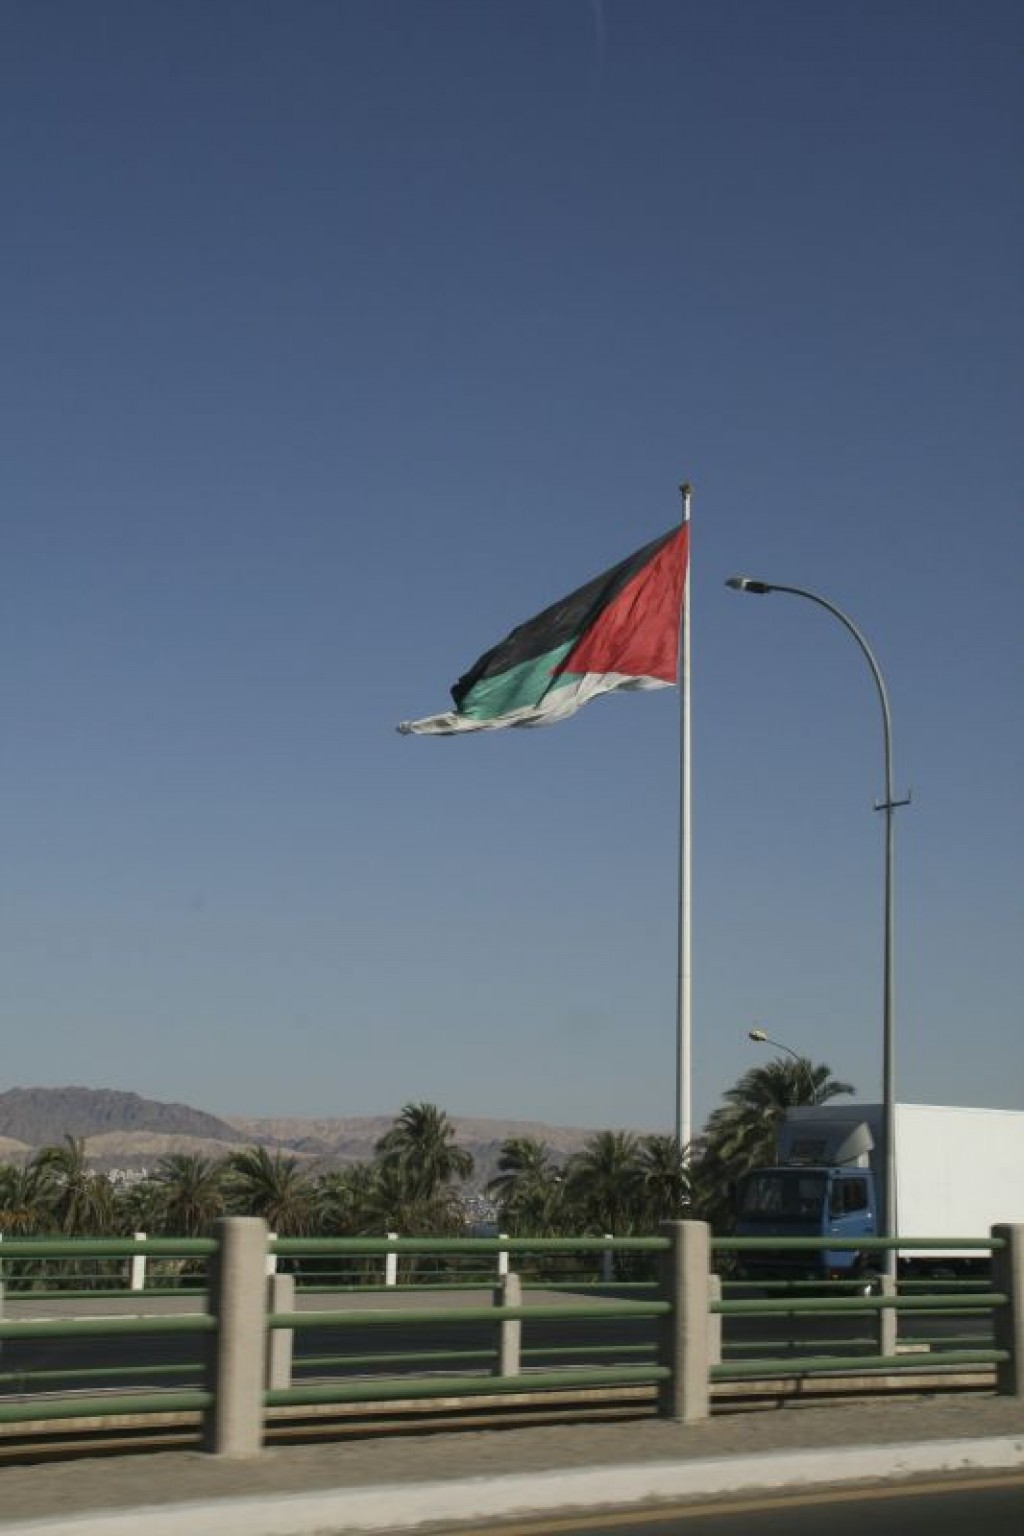 Jordanians love their huge flags.  It doesn't show well here, but this is actually far, far away - one of the largest flags we'd ever seen (until we got to Amaan)